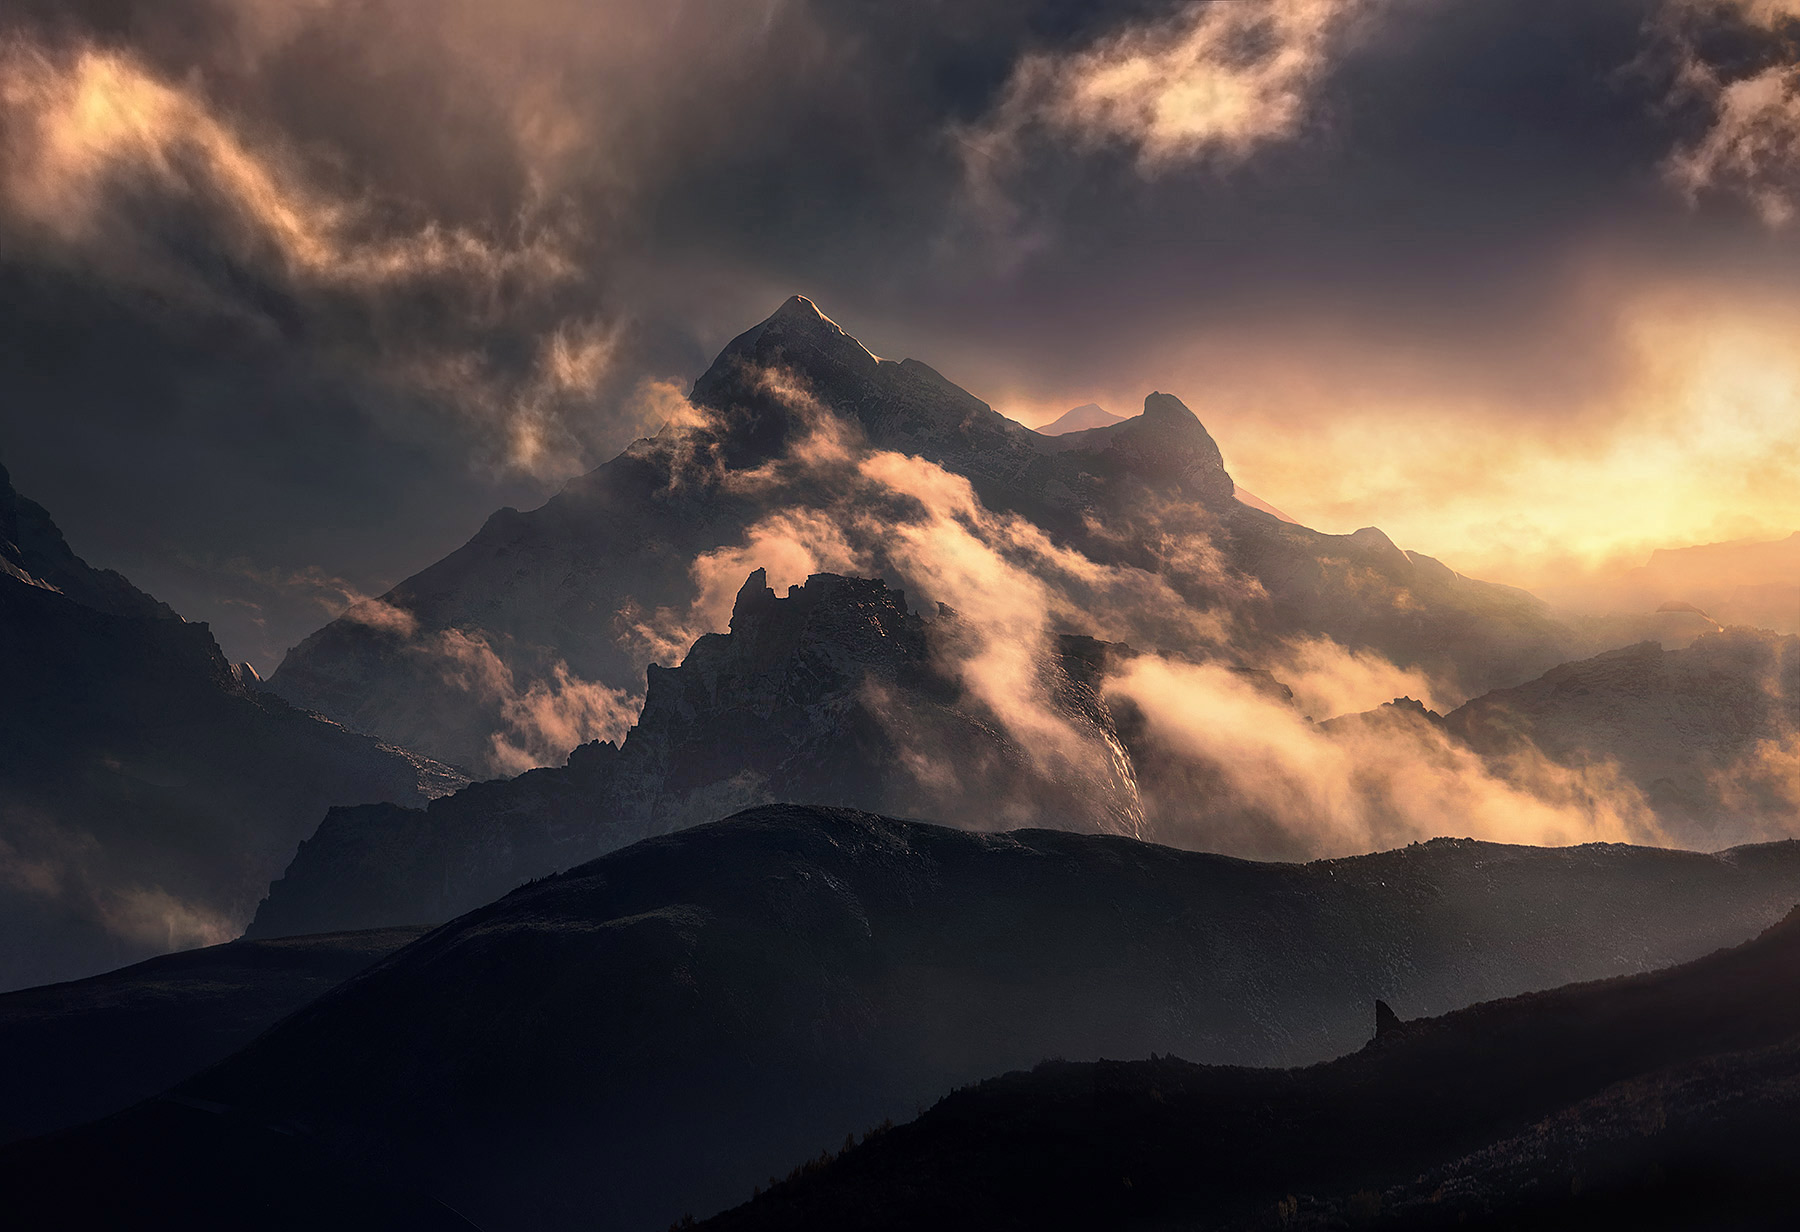 A long lens catches a dramatic perspective on these towering Himalayan giants, while the light brings them to life.